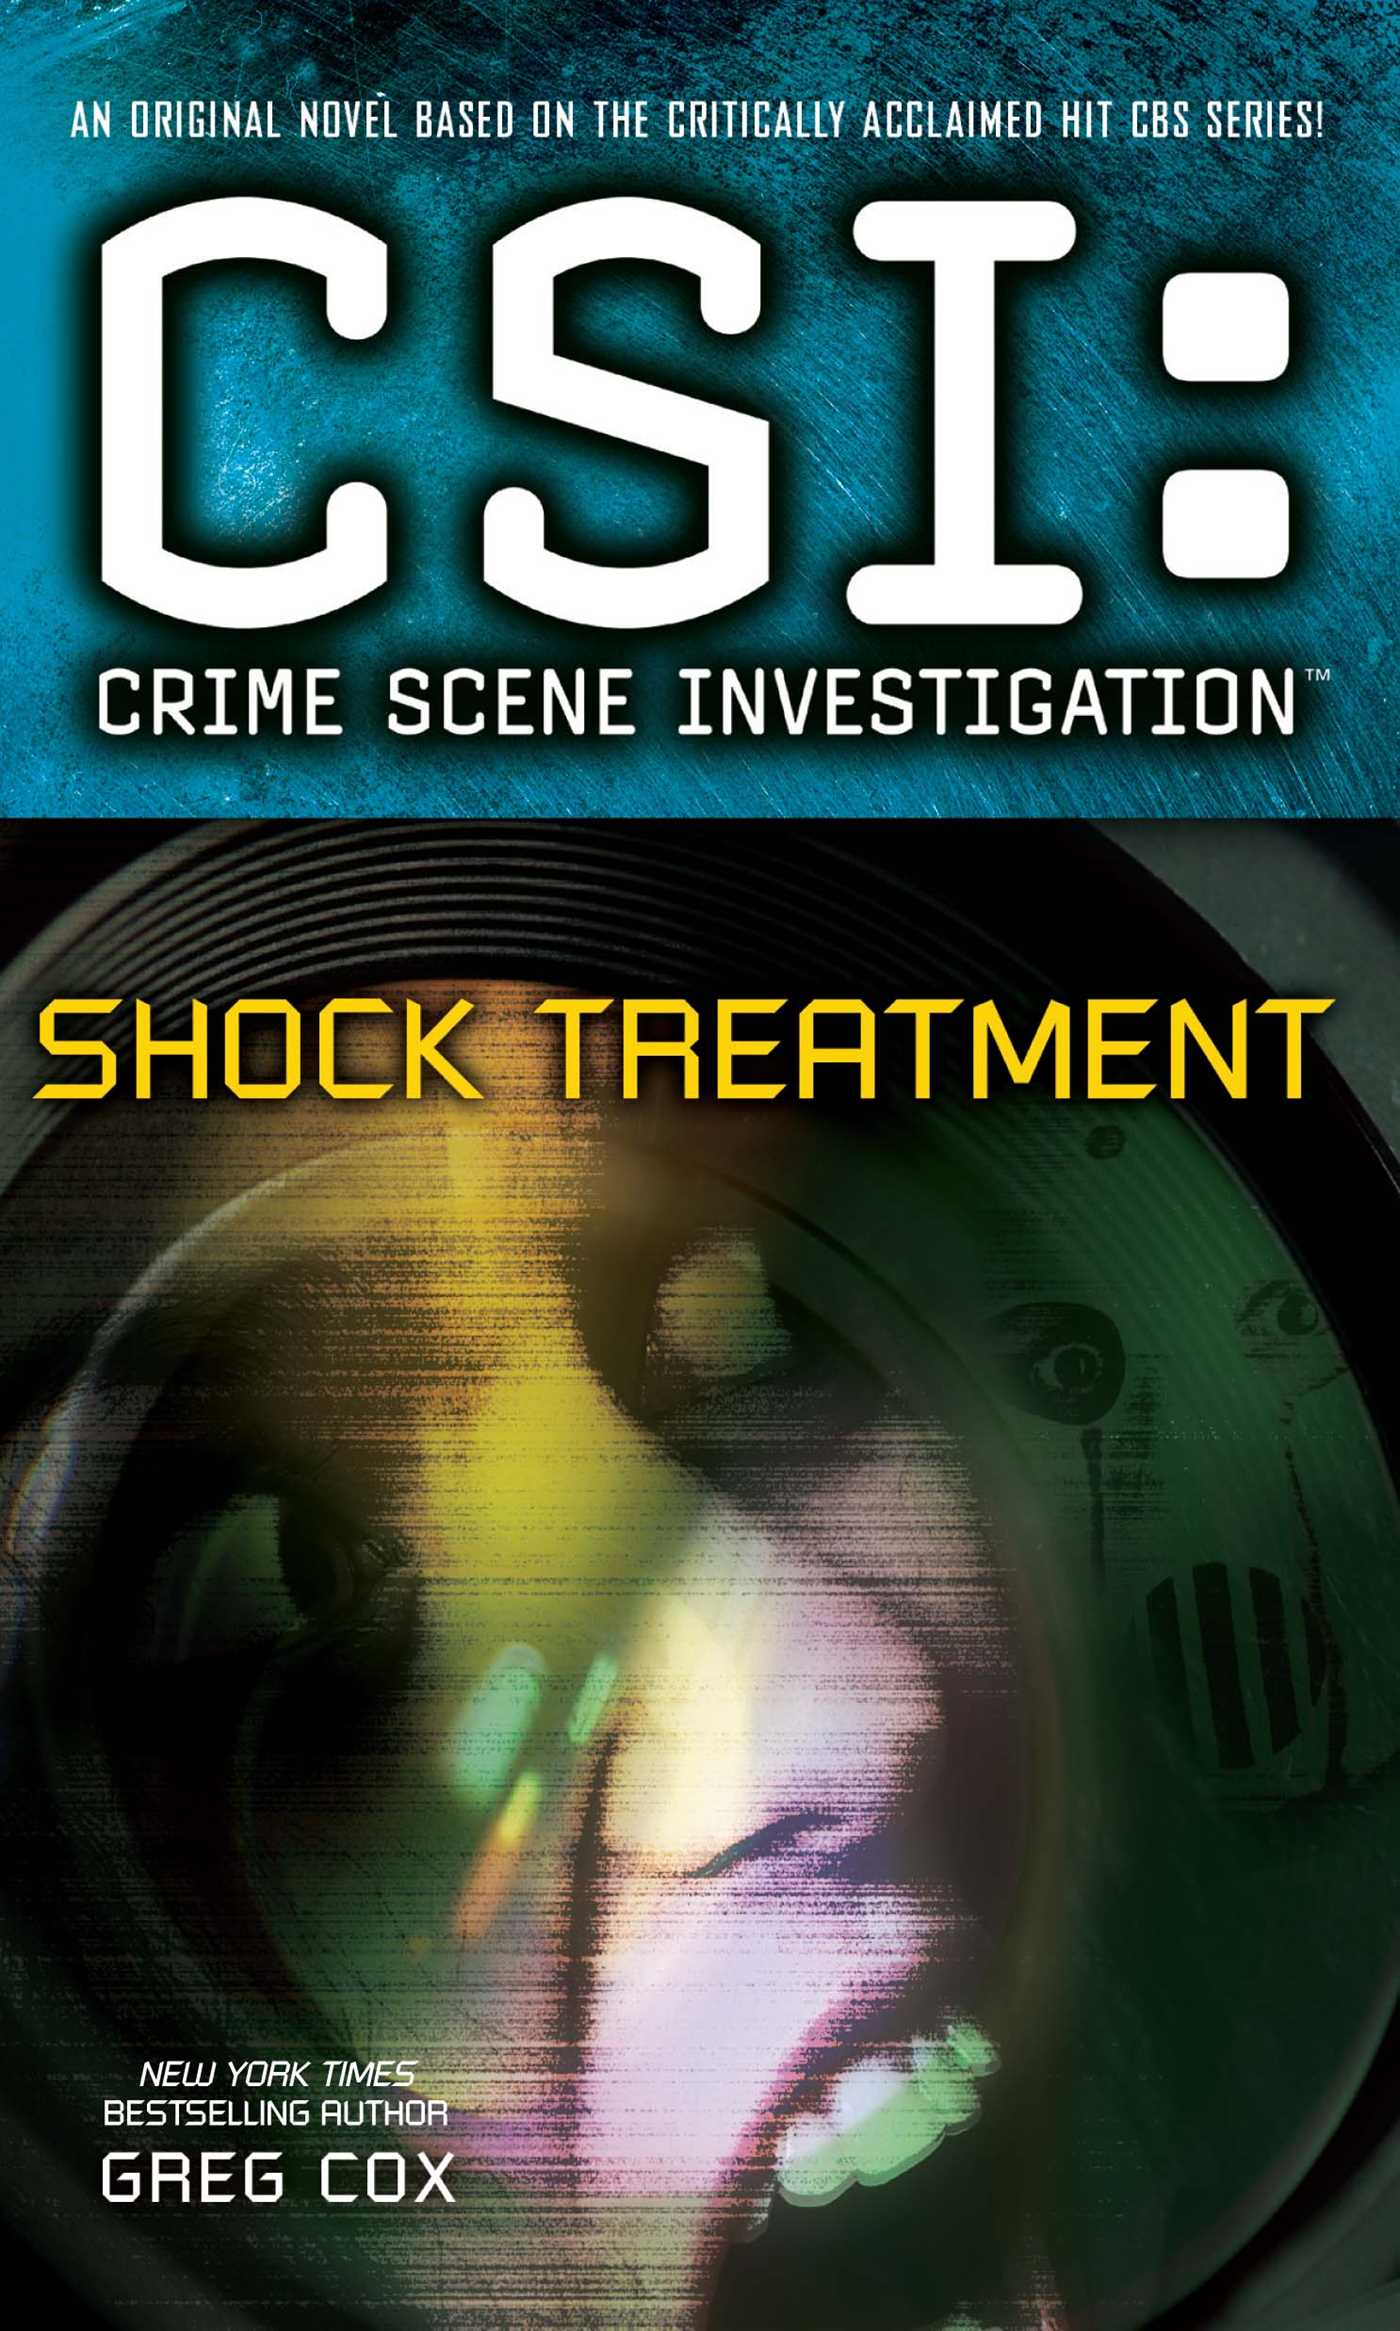 Csi-crime-scene-investigation-shock-treatment-9781439169285_hr